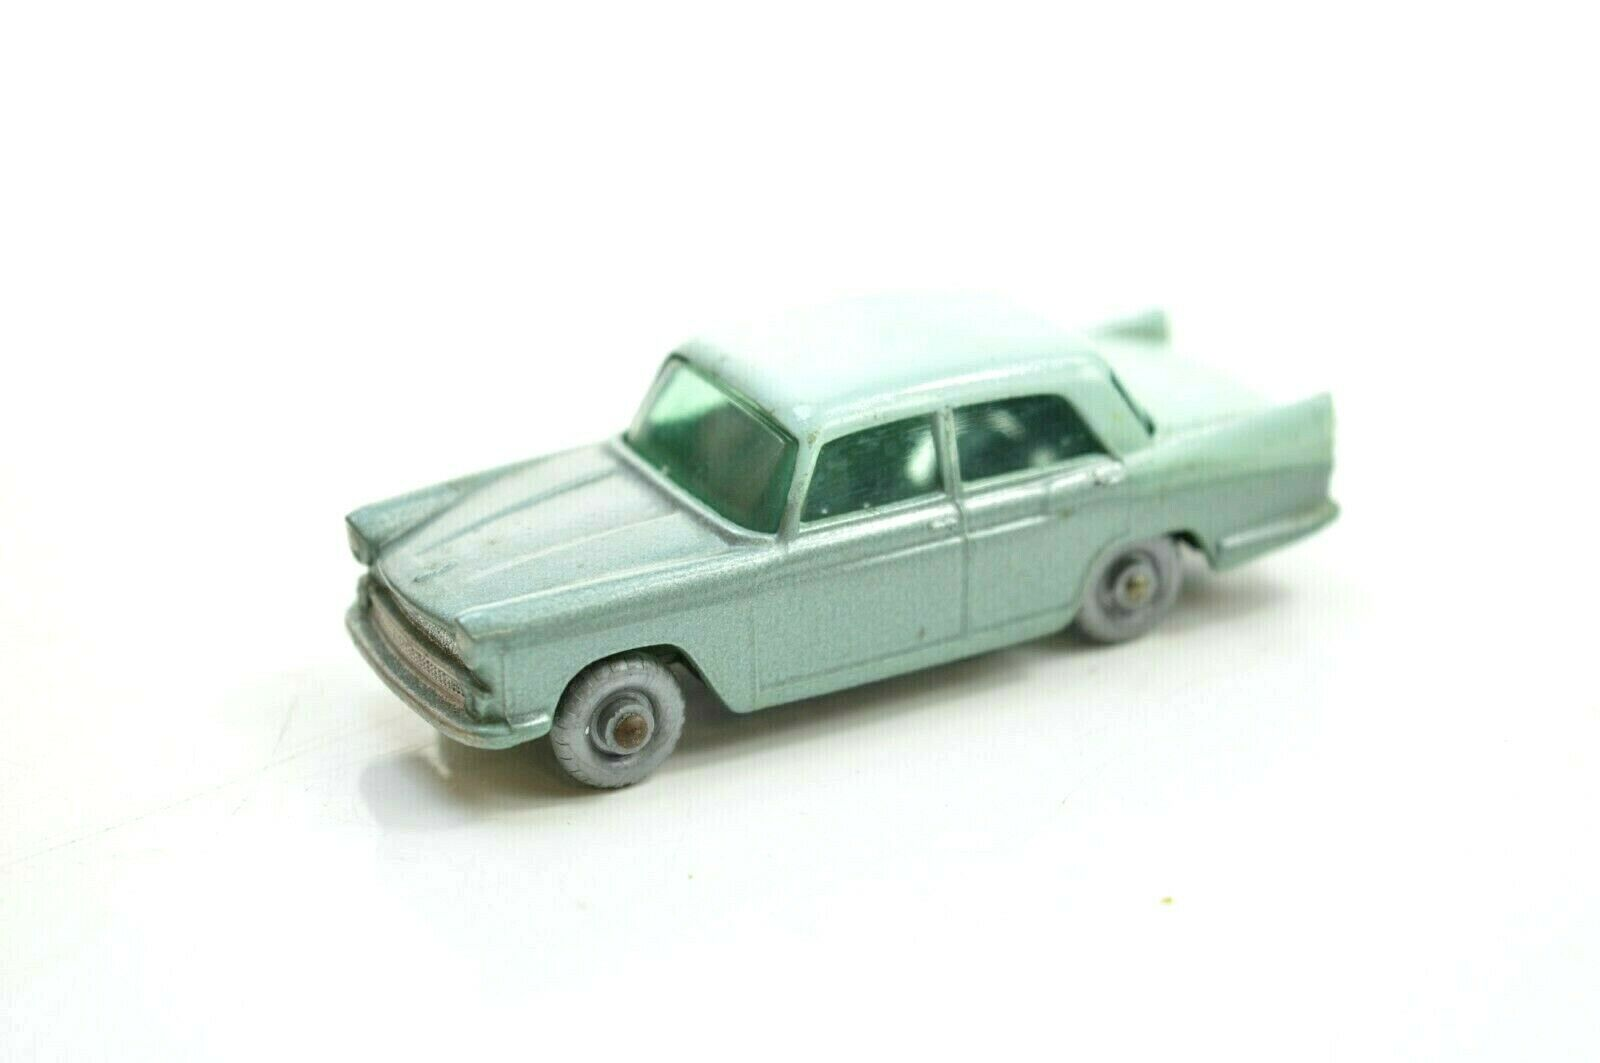 barato y de moda Matchbox 29 Austin A55 Cambridge Cambridge Cambridge  seguro de calidad